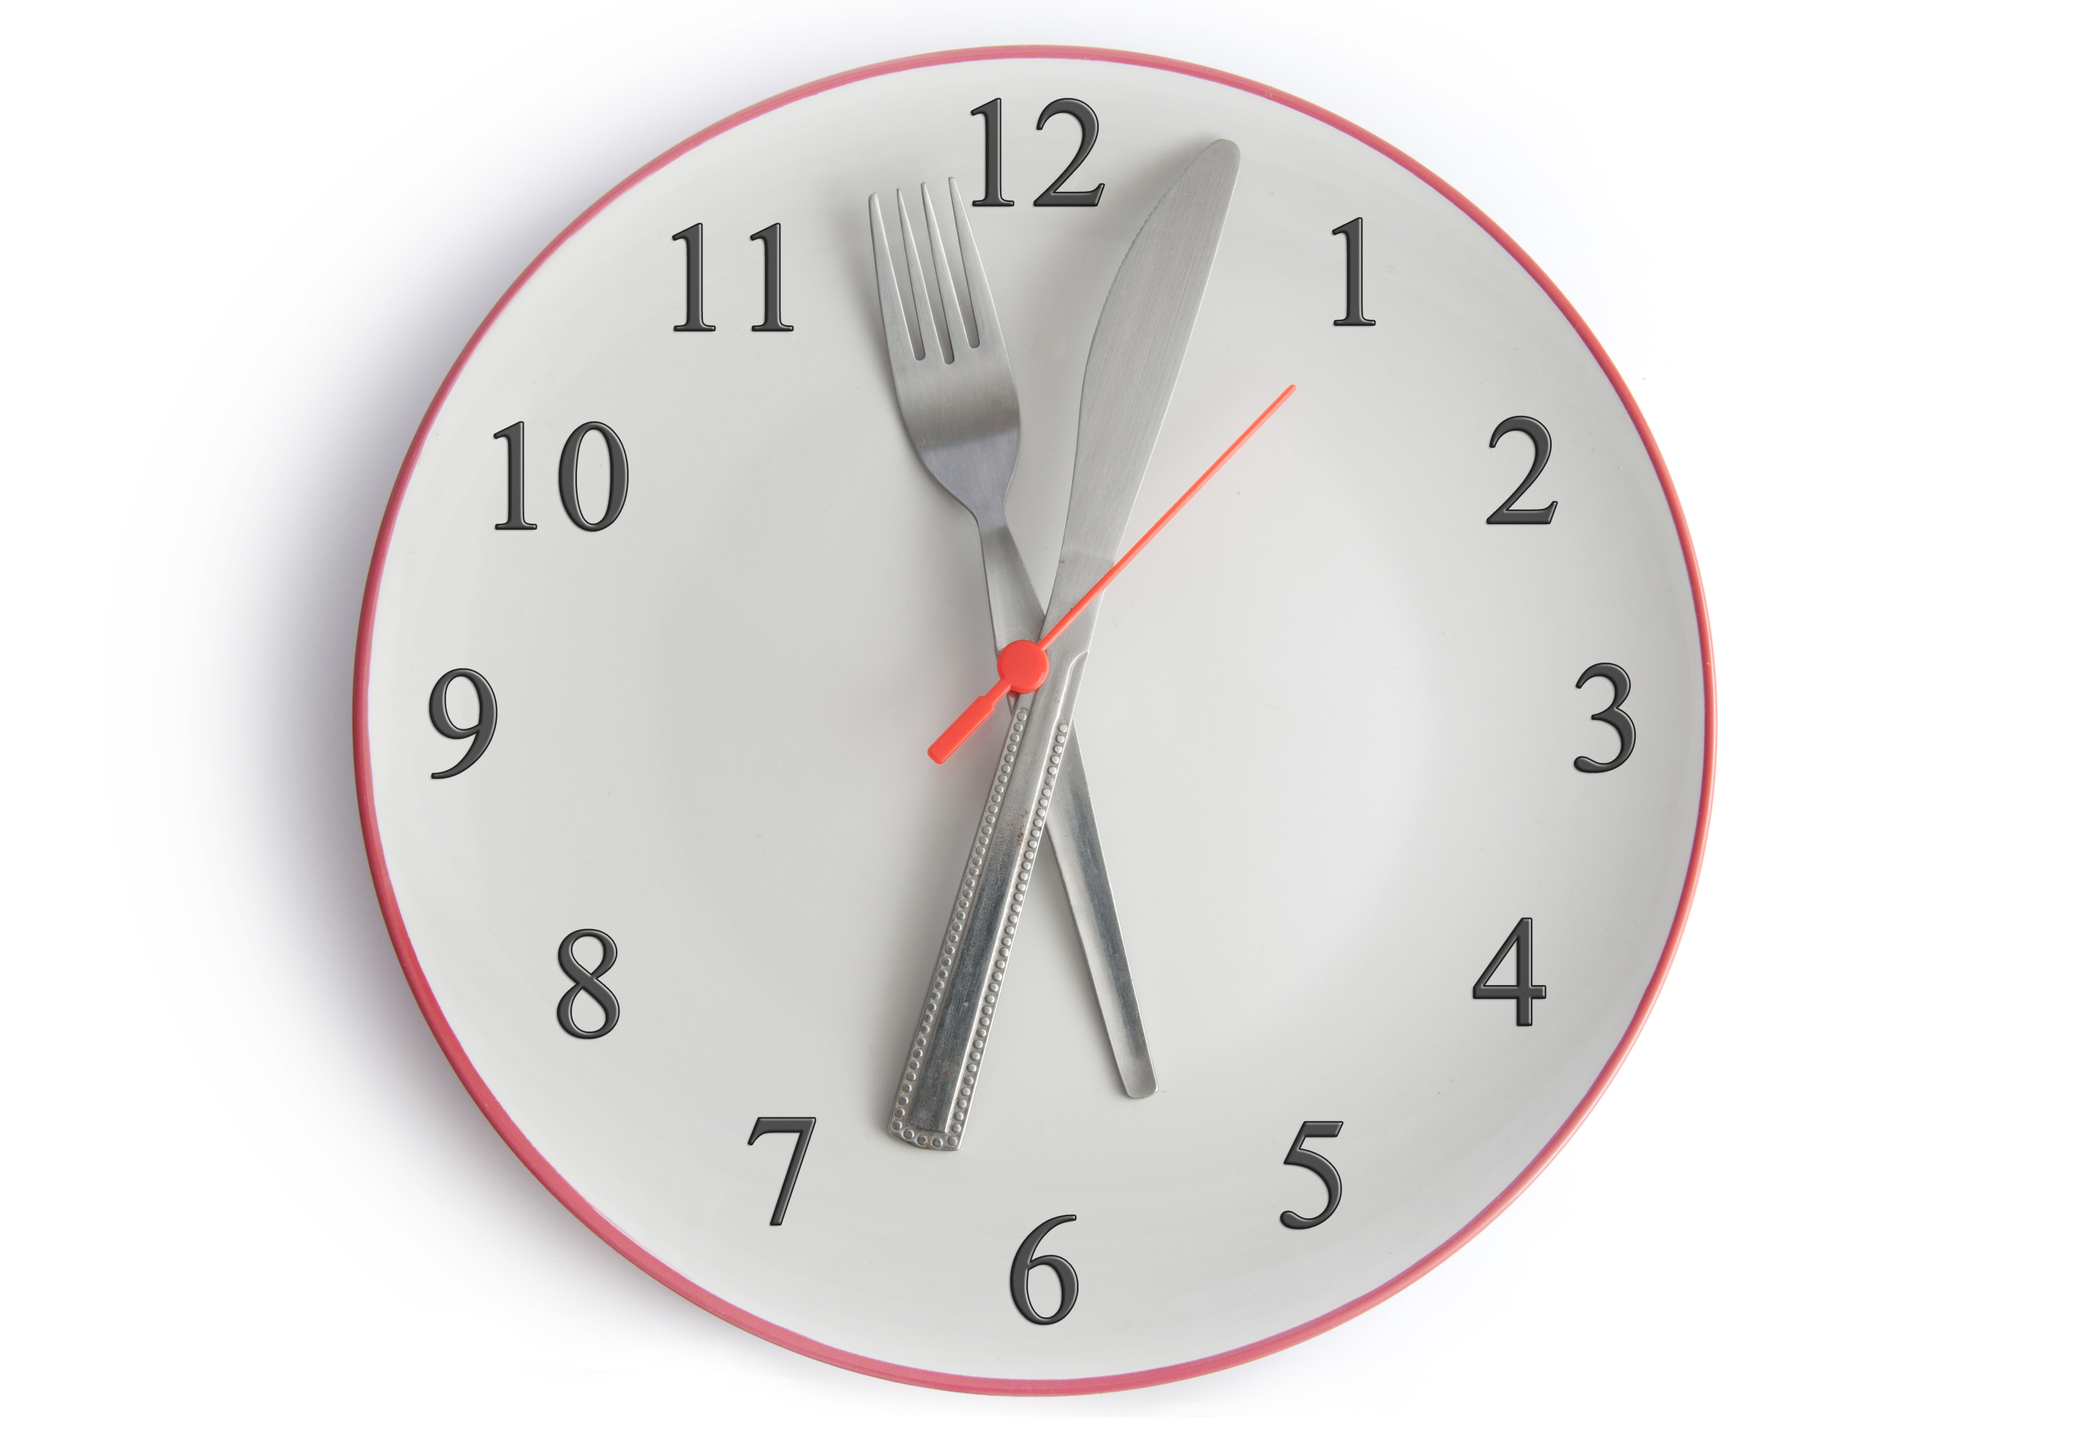 Clock with fork and knife as hour and minute hands